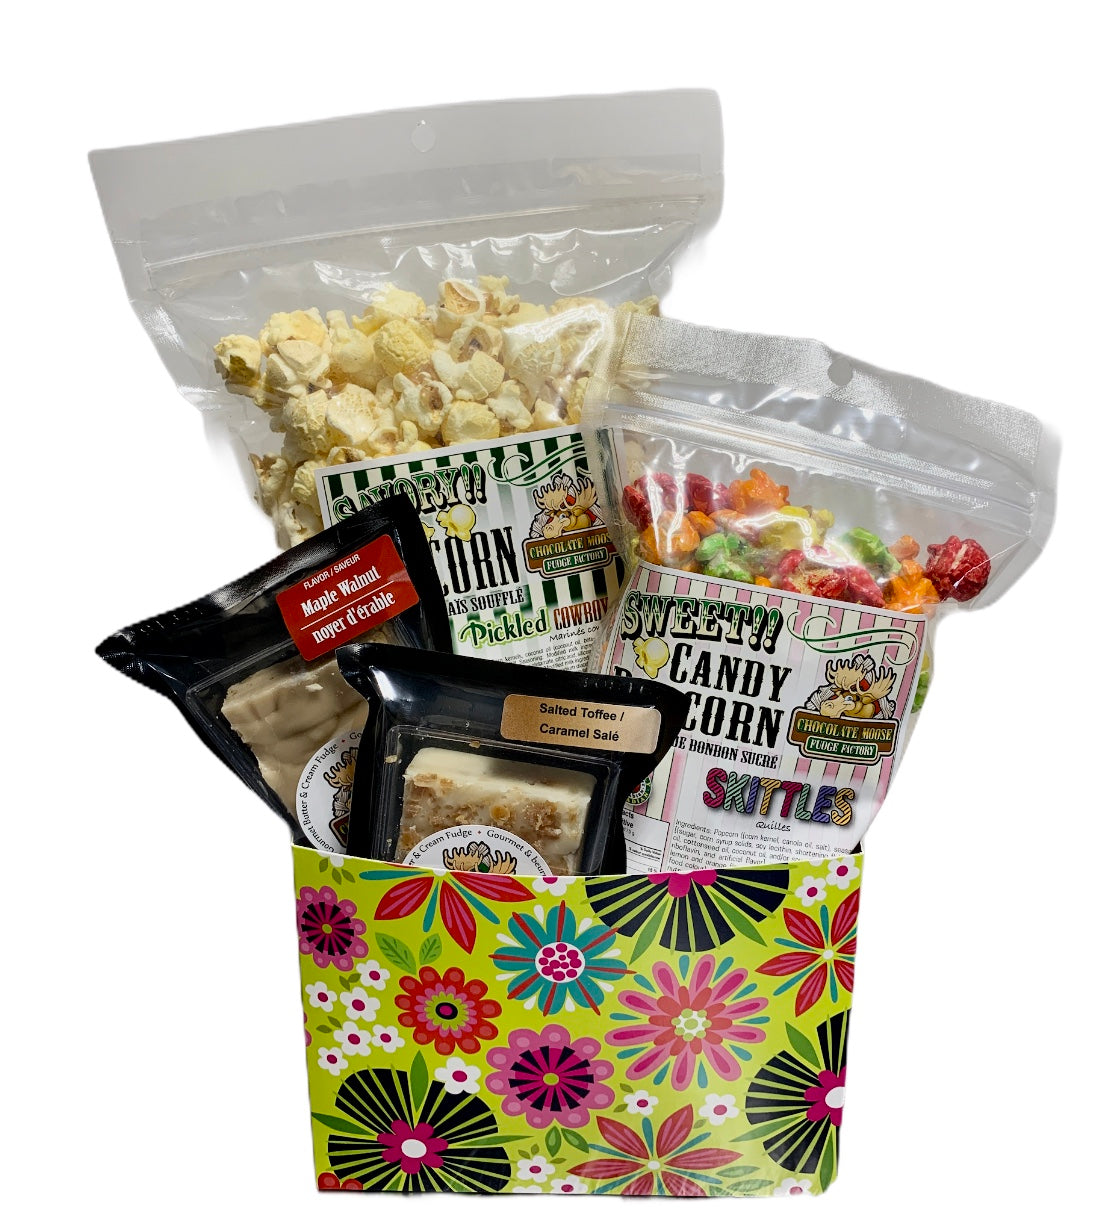 Retro Flower Power $25 Fudge/Popcorn Gift Basket